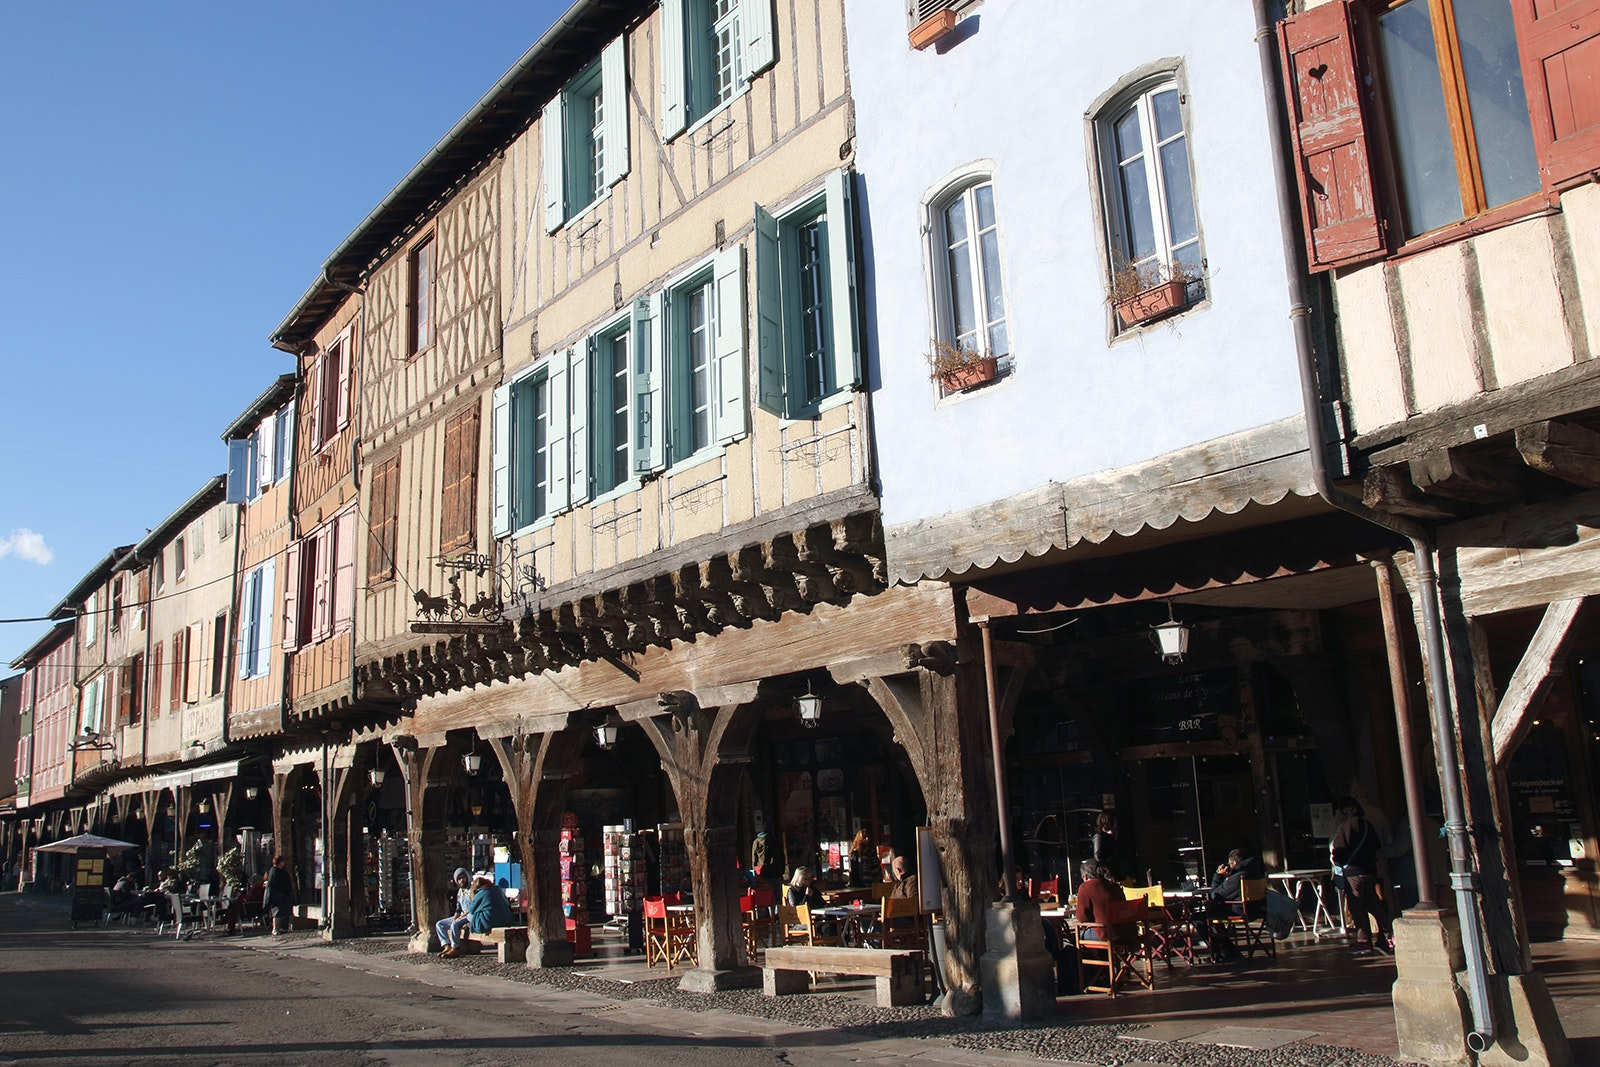 Mirepoix is lined with 13th-century timbered houses.